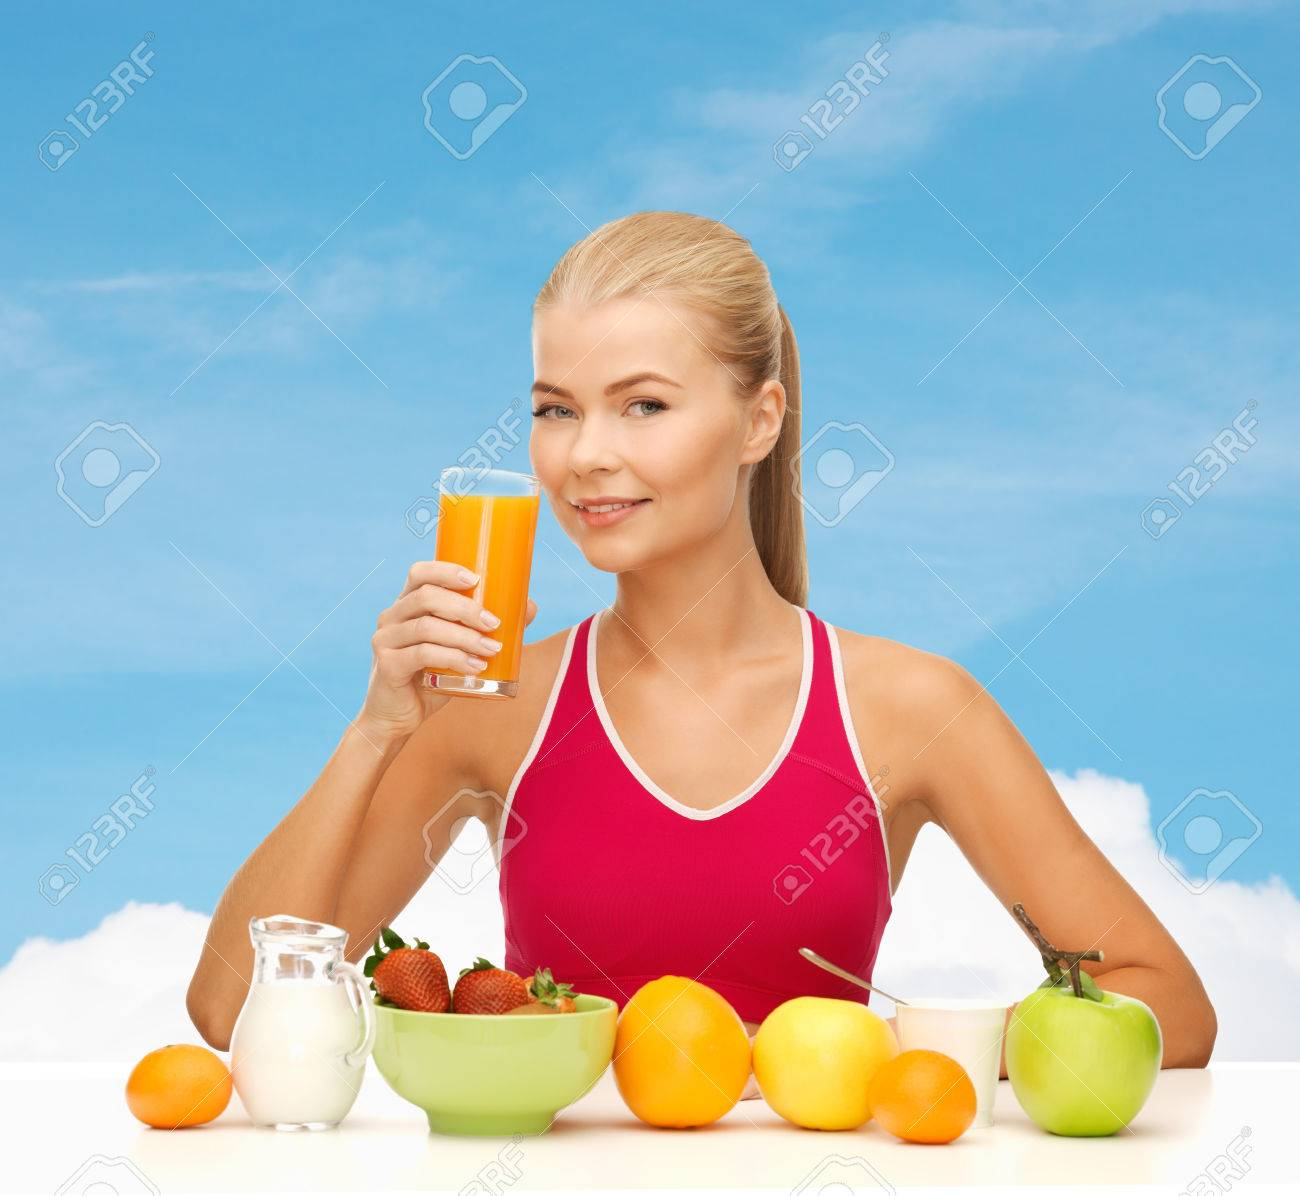 fitness, diet and healthcare concept - smiling young woman with healthy breakfast and drinking orange juice Stock Photo - 29246449